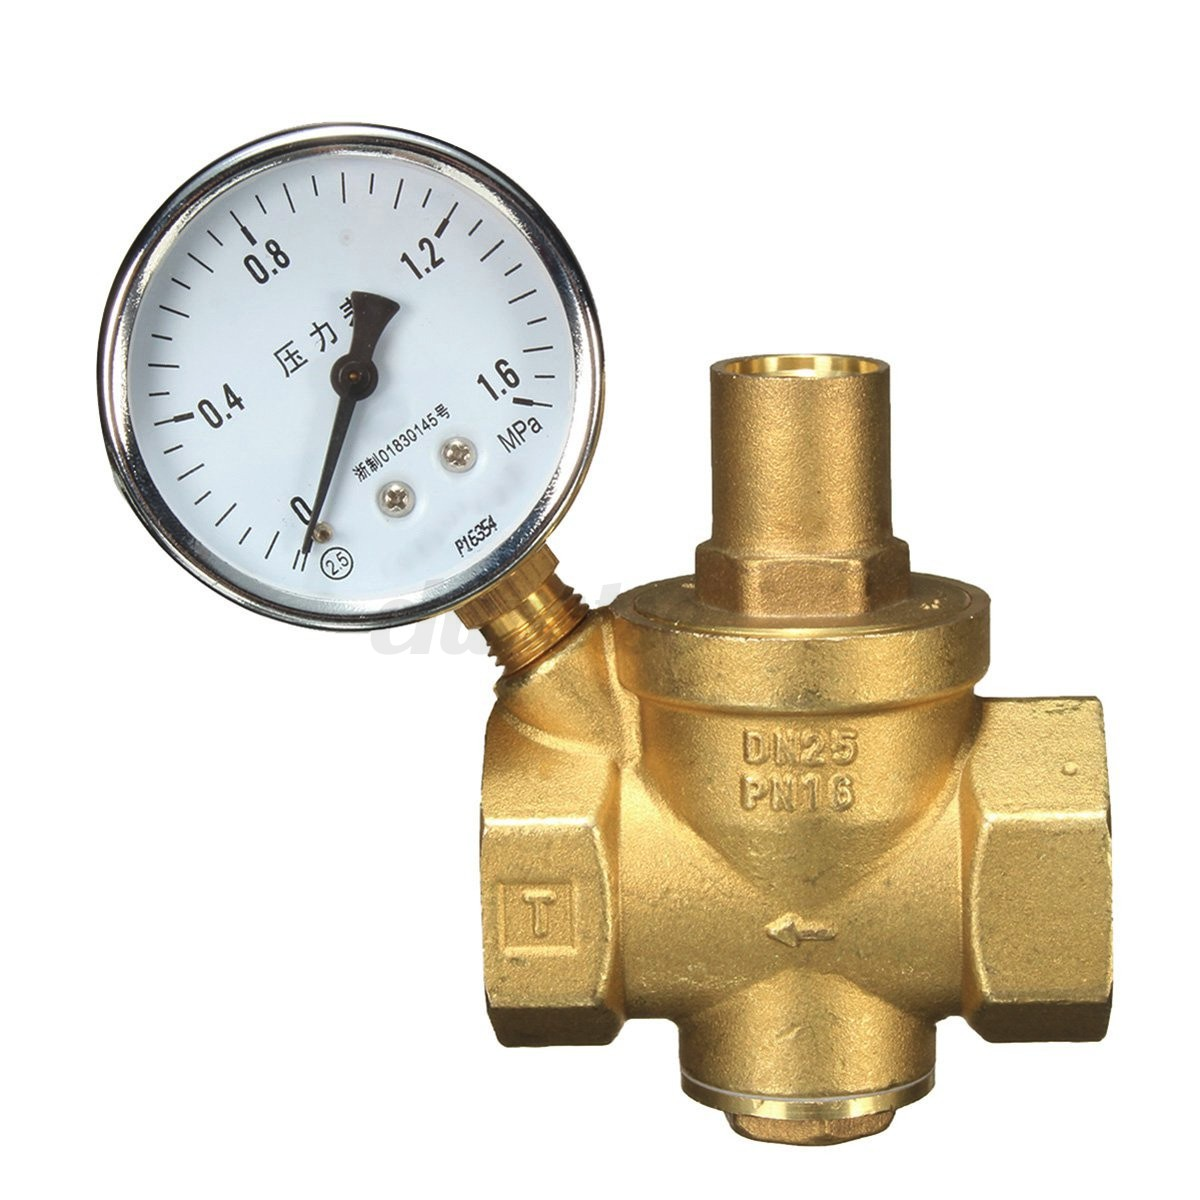 dn25 pressure reducing valve brass water flow with adjustable gauge wrench us ebay. Black Bedroom Furniture Sets. Home Design Ideas